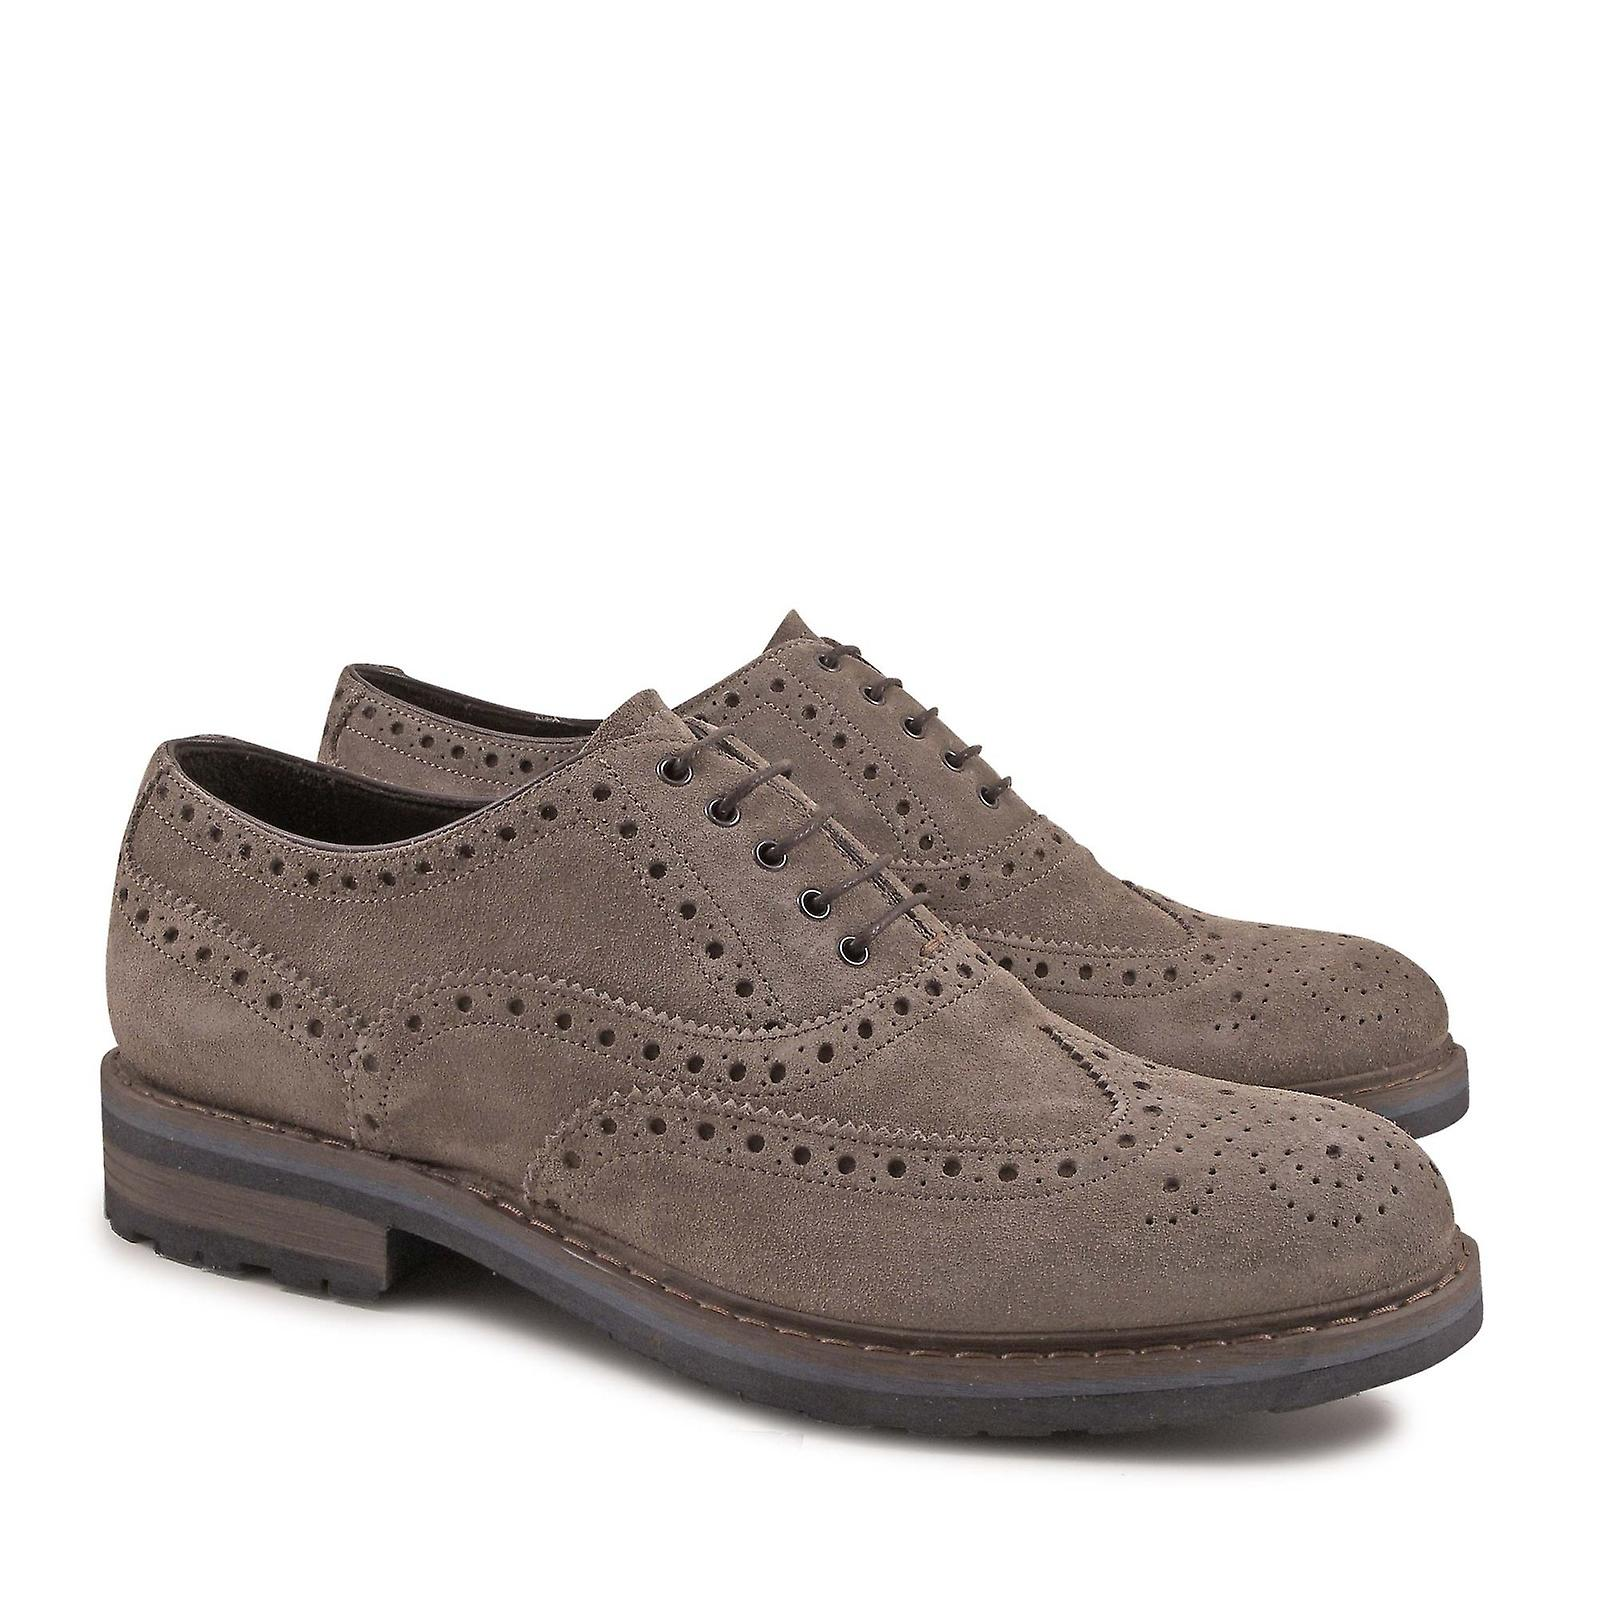 Handmade in brogue shoes for men in Handmade taupe suede leather 8536ab